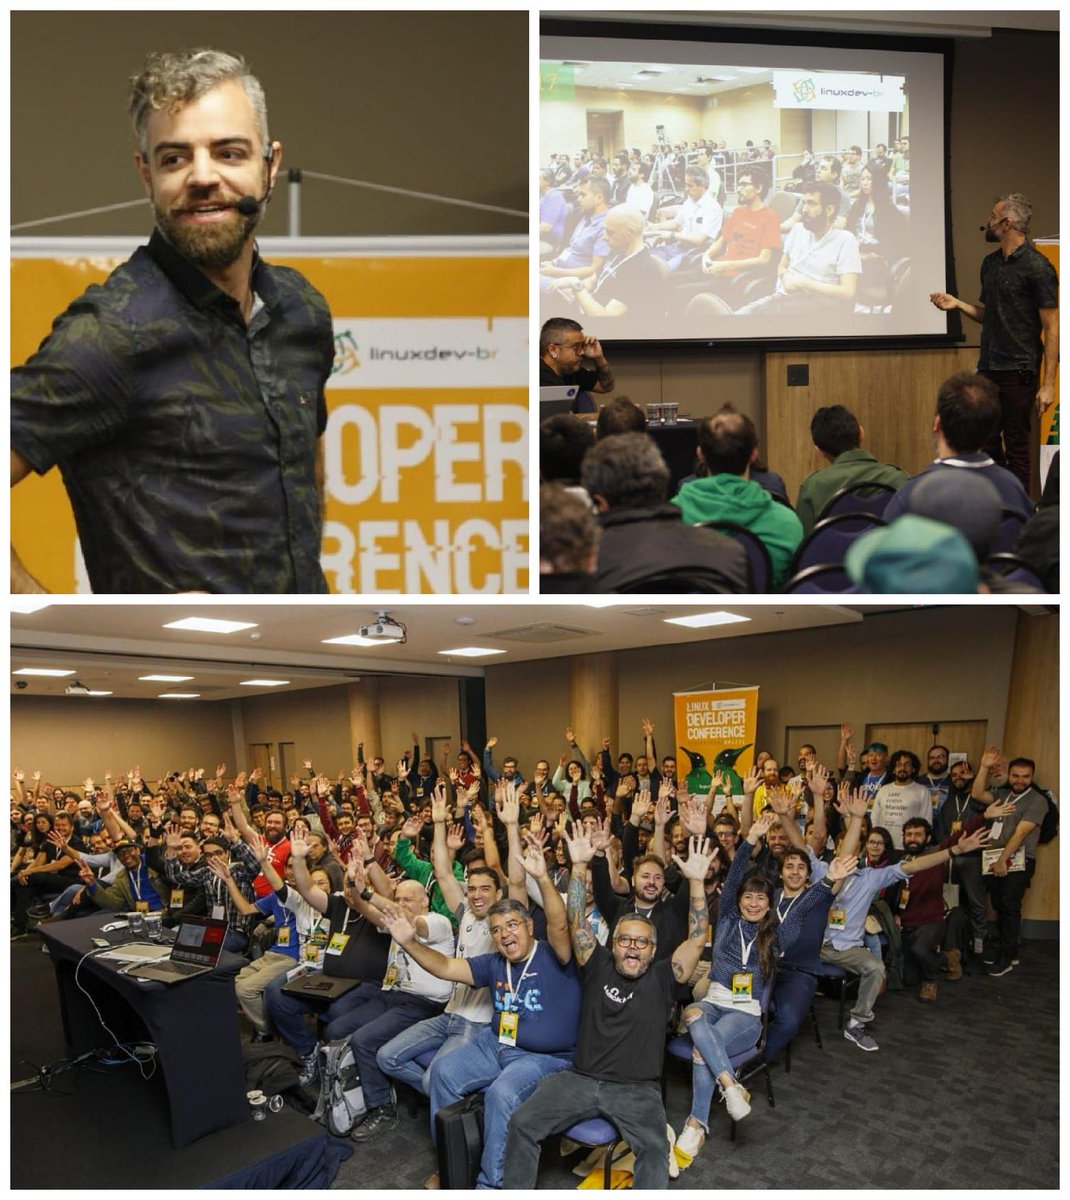 Full house earlier today at @linuxdevbr in São Paulo, including for